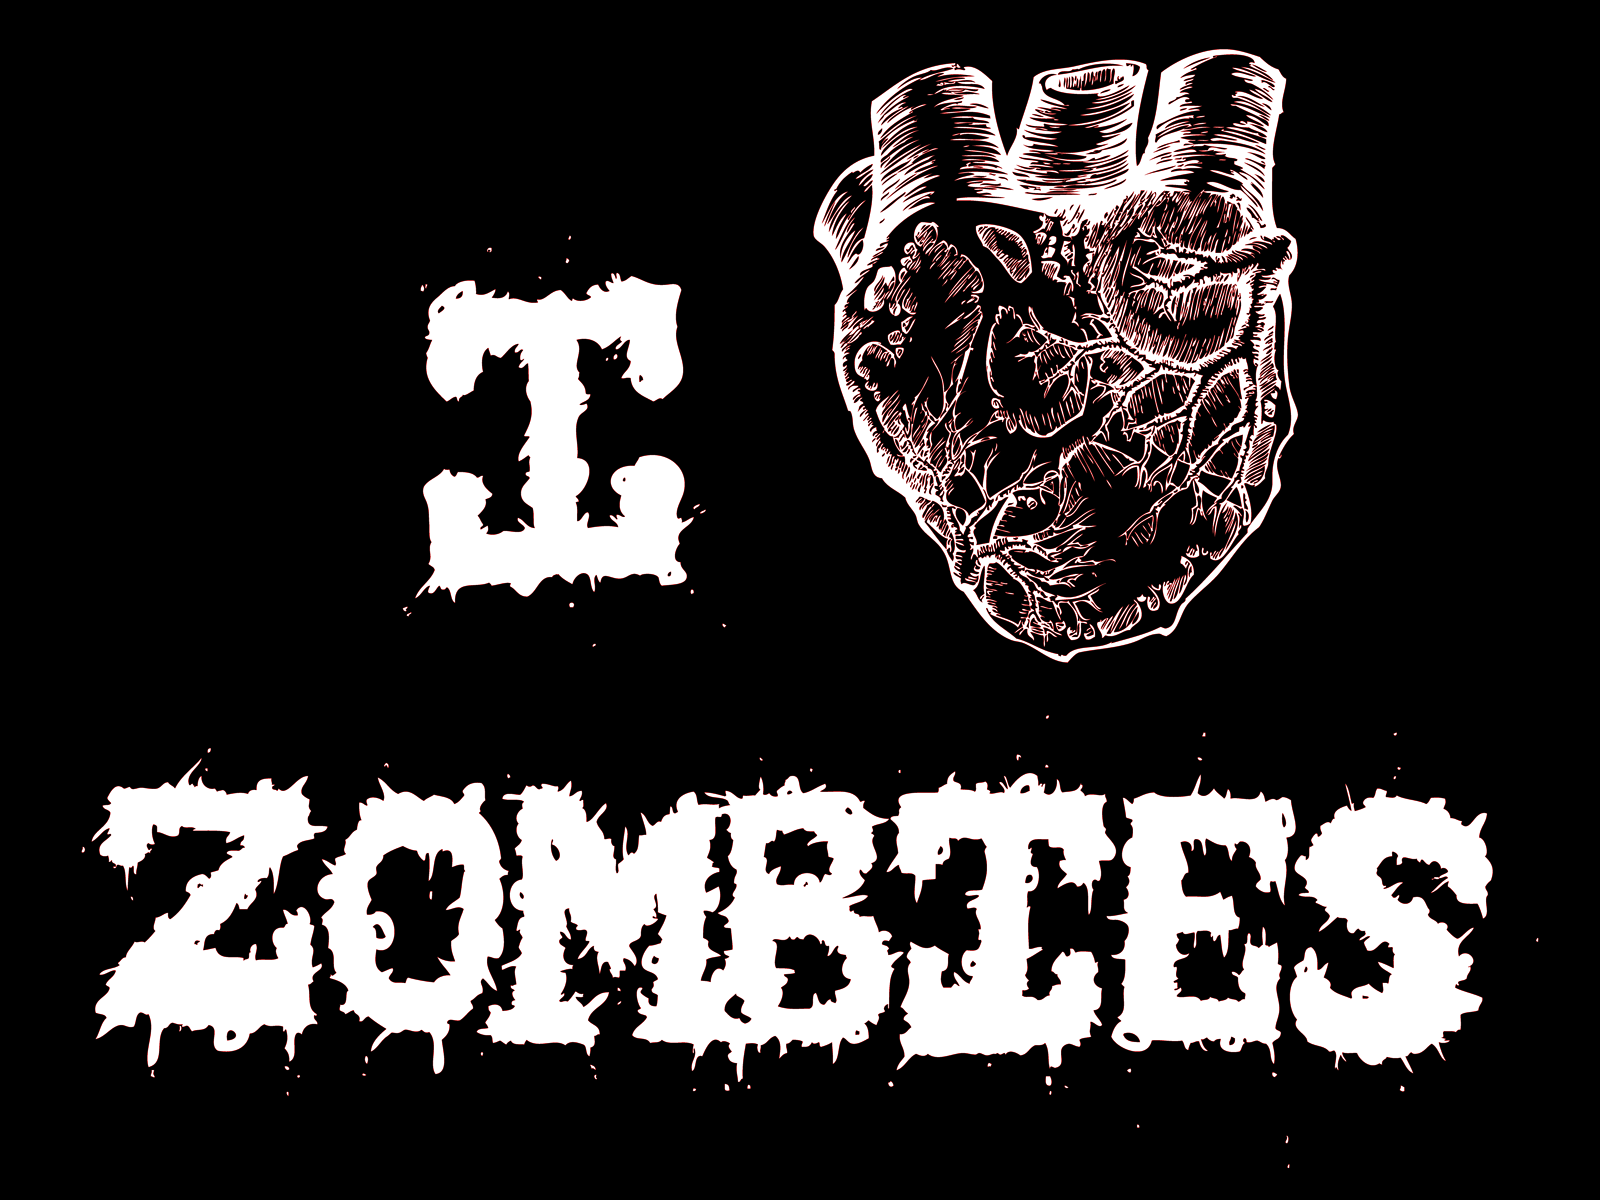 zombie wallpaper HD, scary and horror scenery ~ Scary Wallpapers